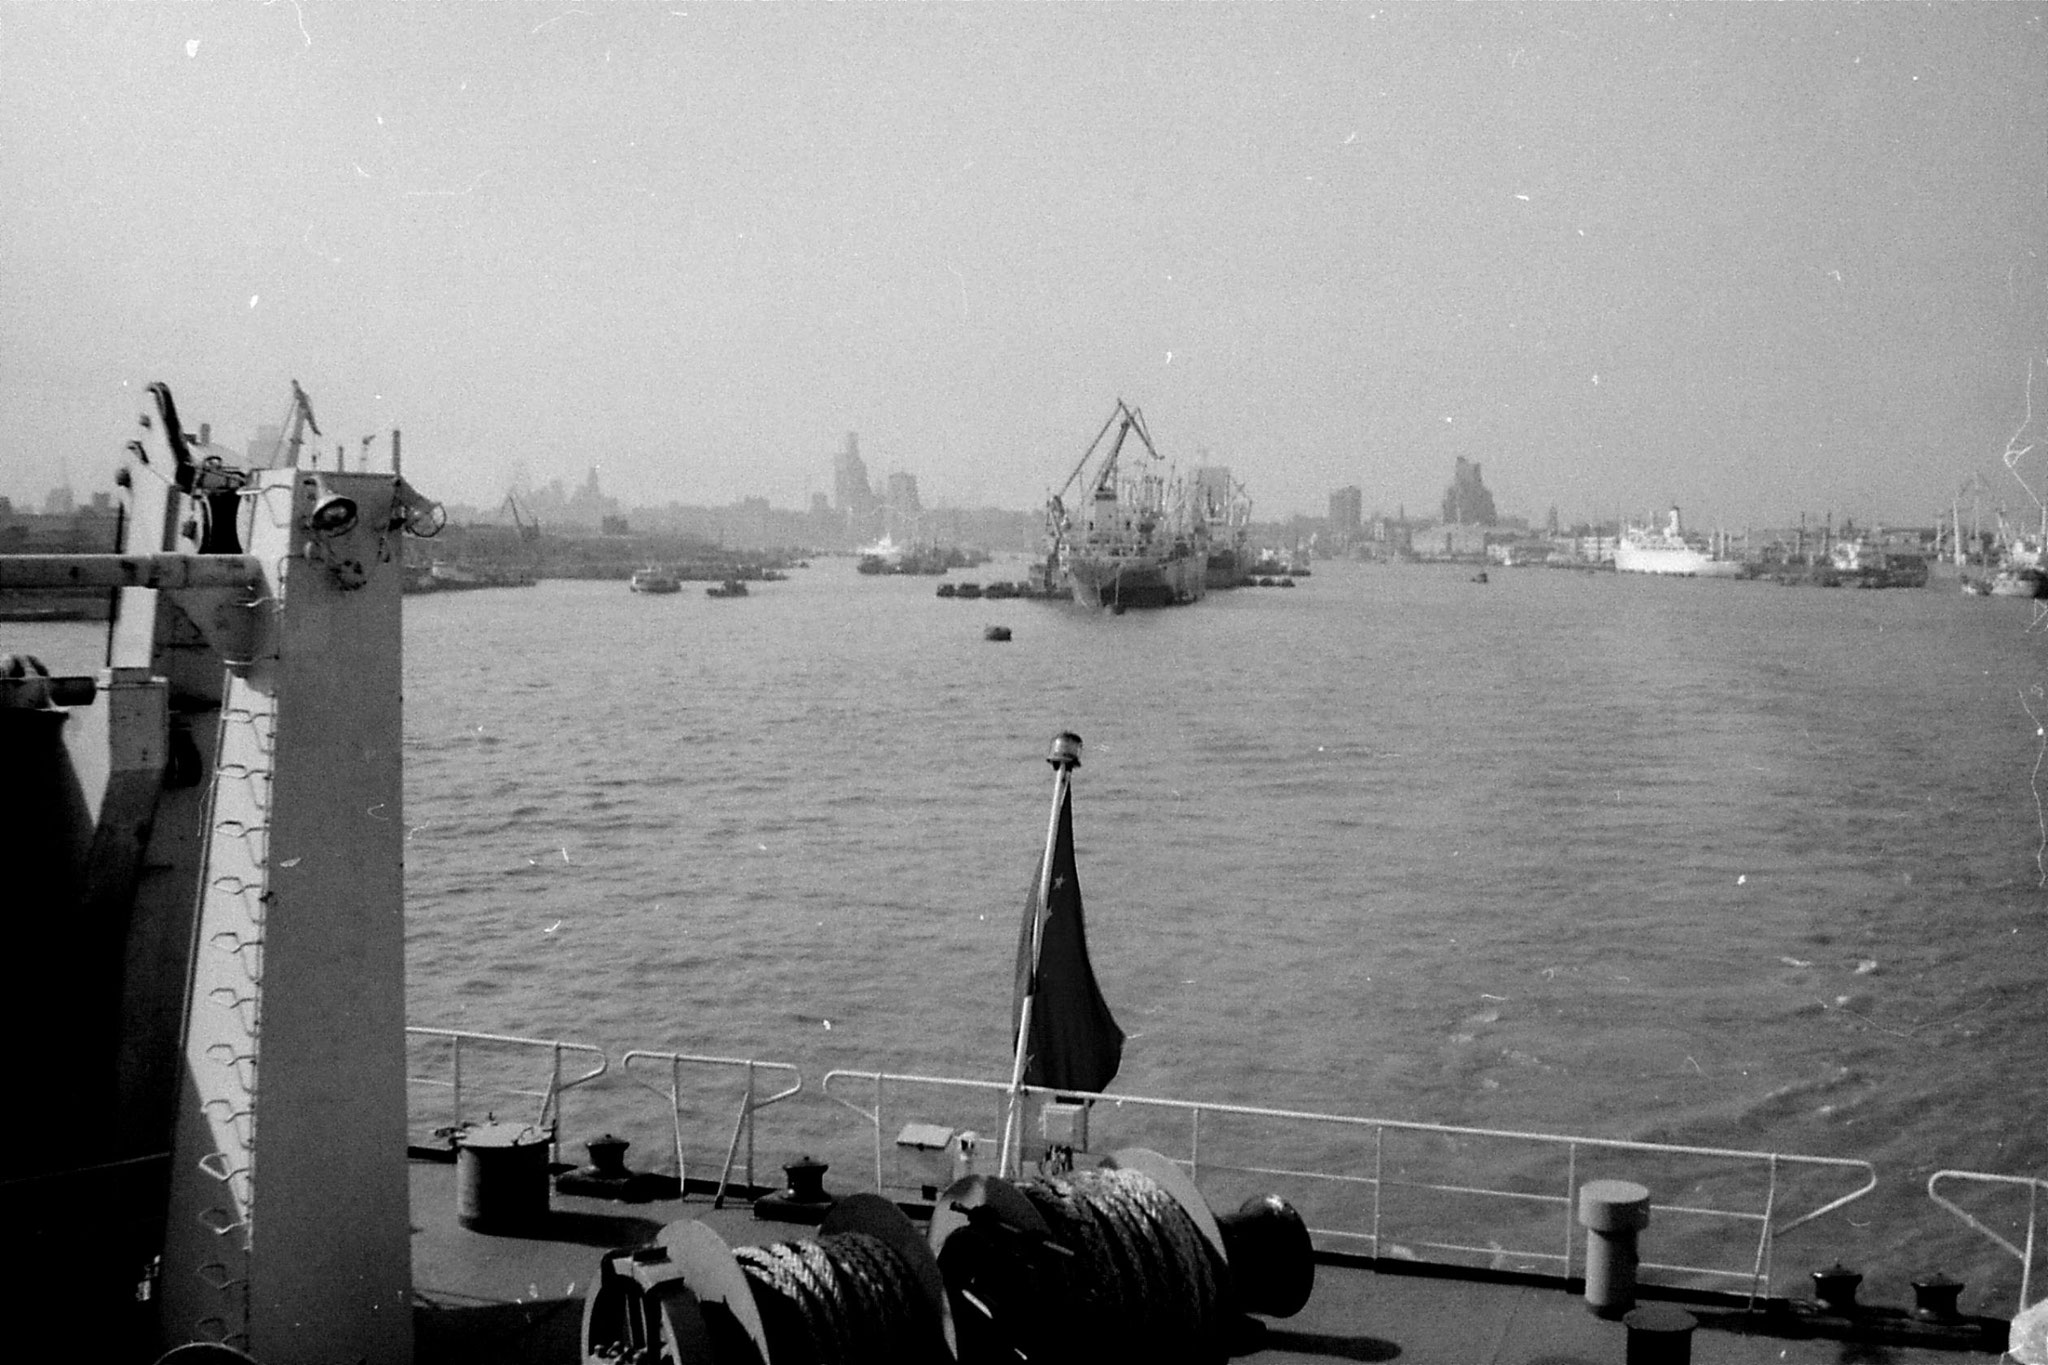 17/12/1988: 31: Shanghai from ship to Japan